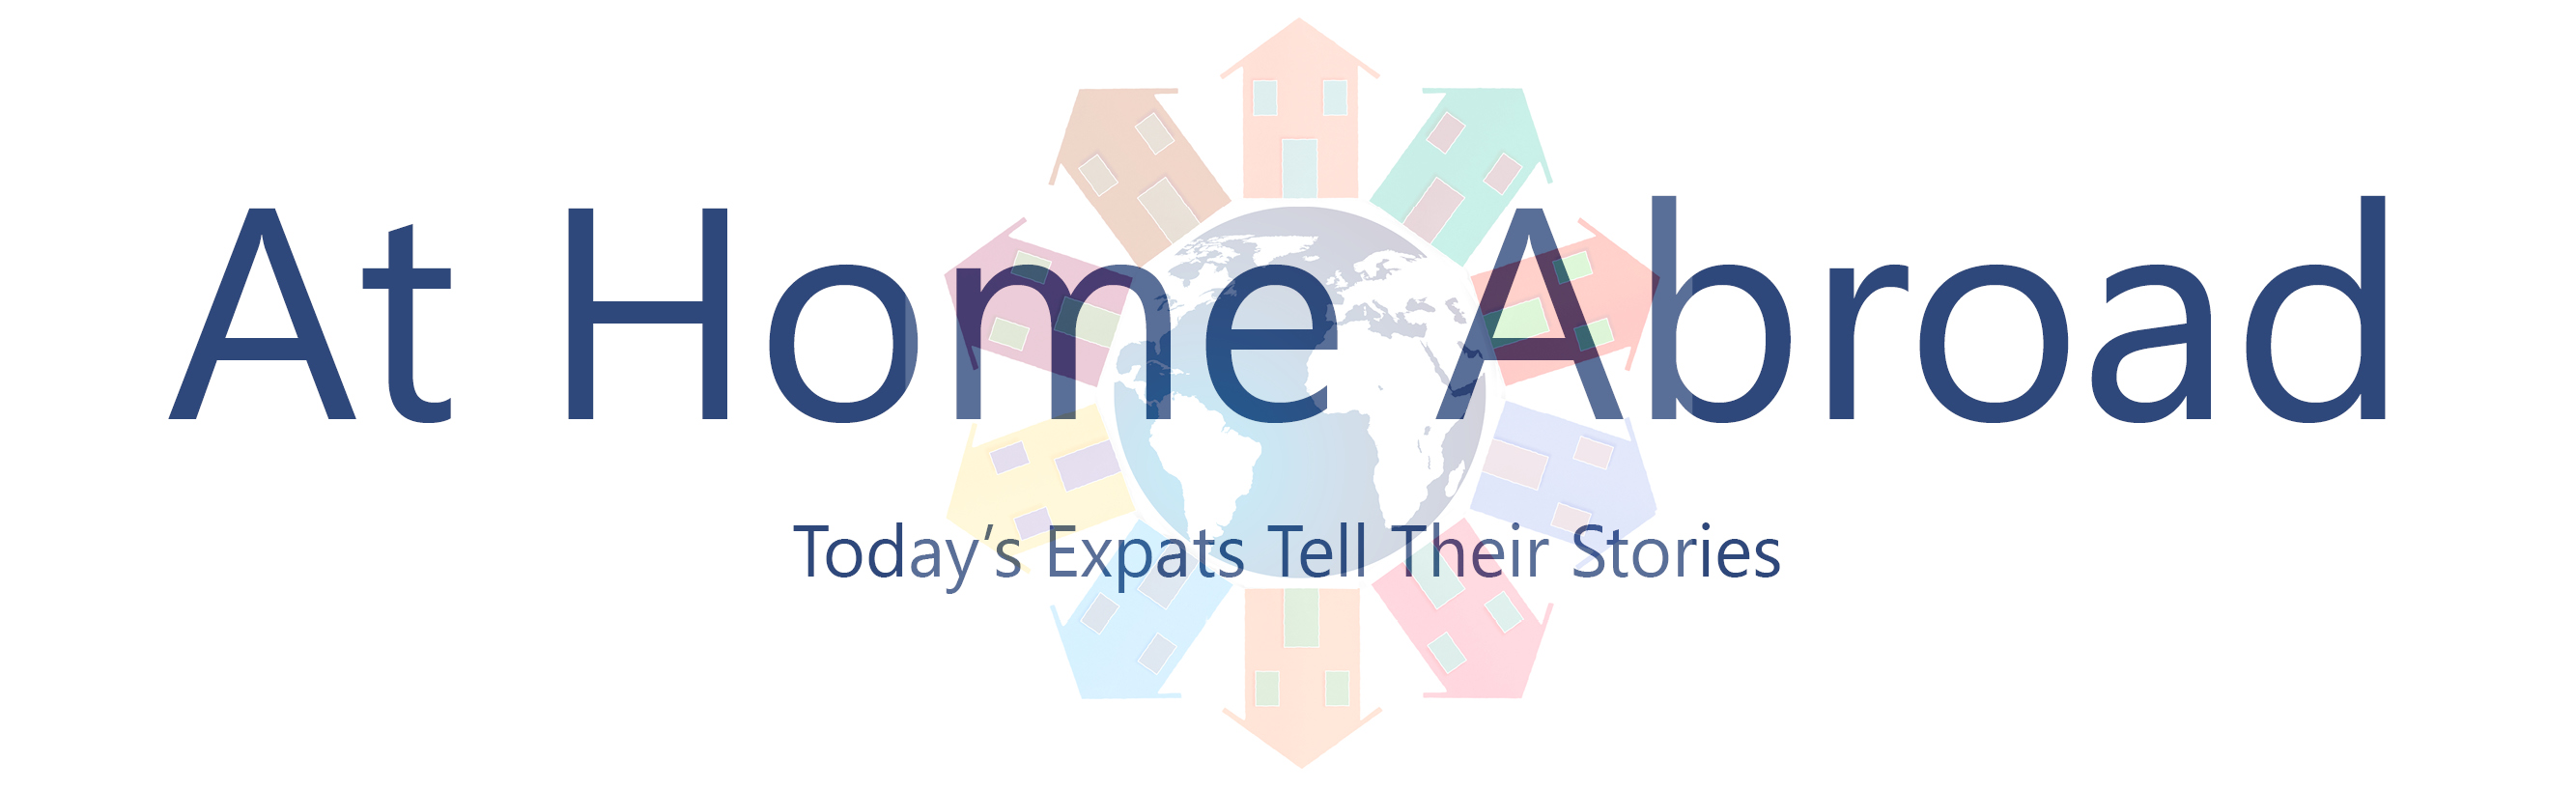 At Home Abroad Today's Expats Tell Their Stories